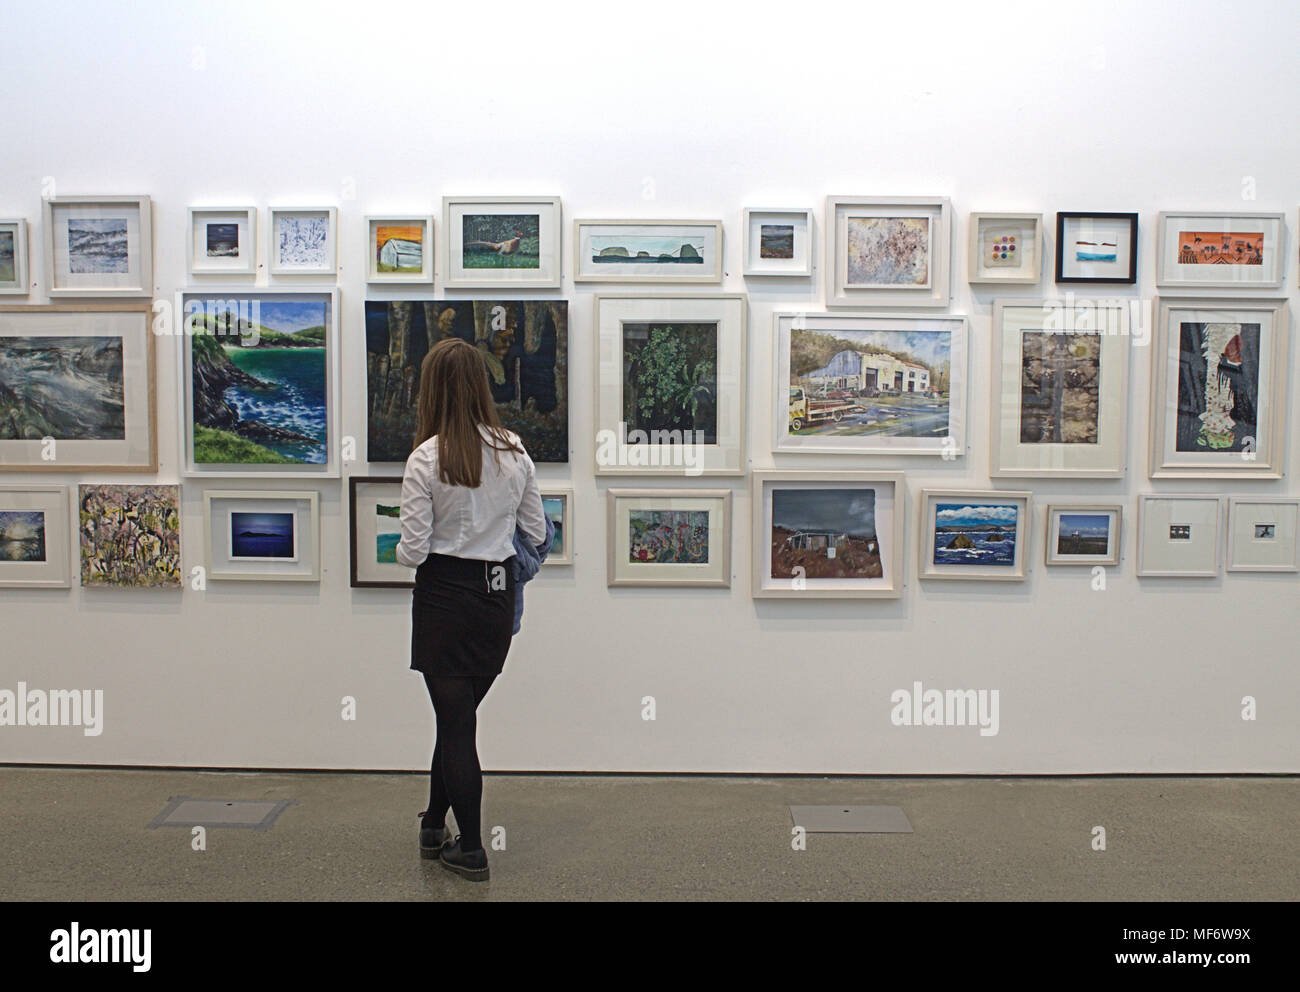 young-girl-taking-time-to-admire-the-paintings-and-exhibits-on-display-in-the-uillinn-art-gallery-in-skibbereen-ireland-MF6W9X.jpg